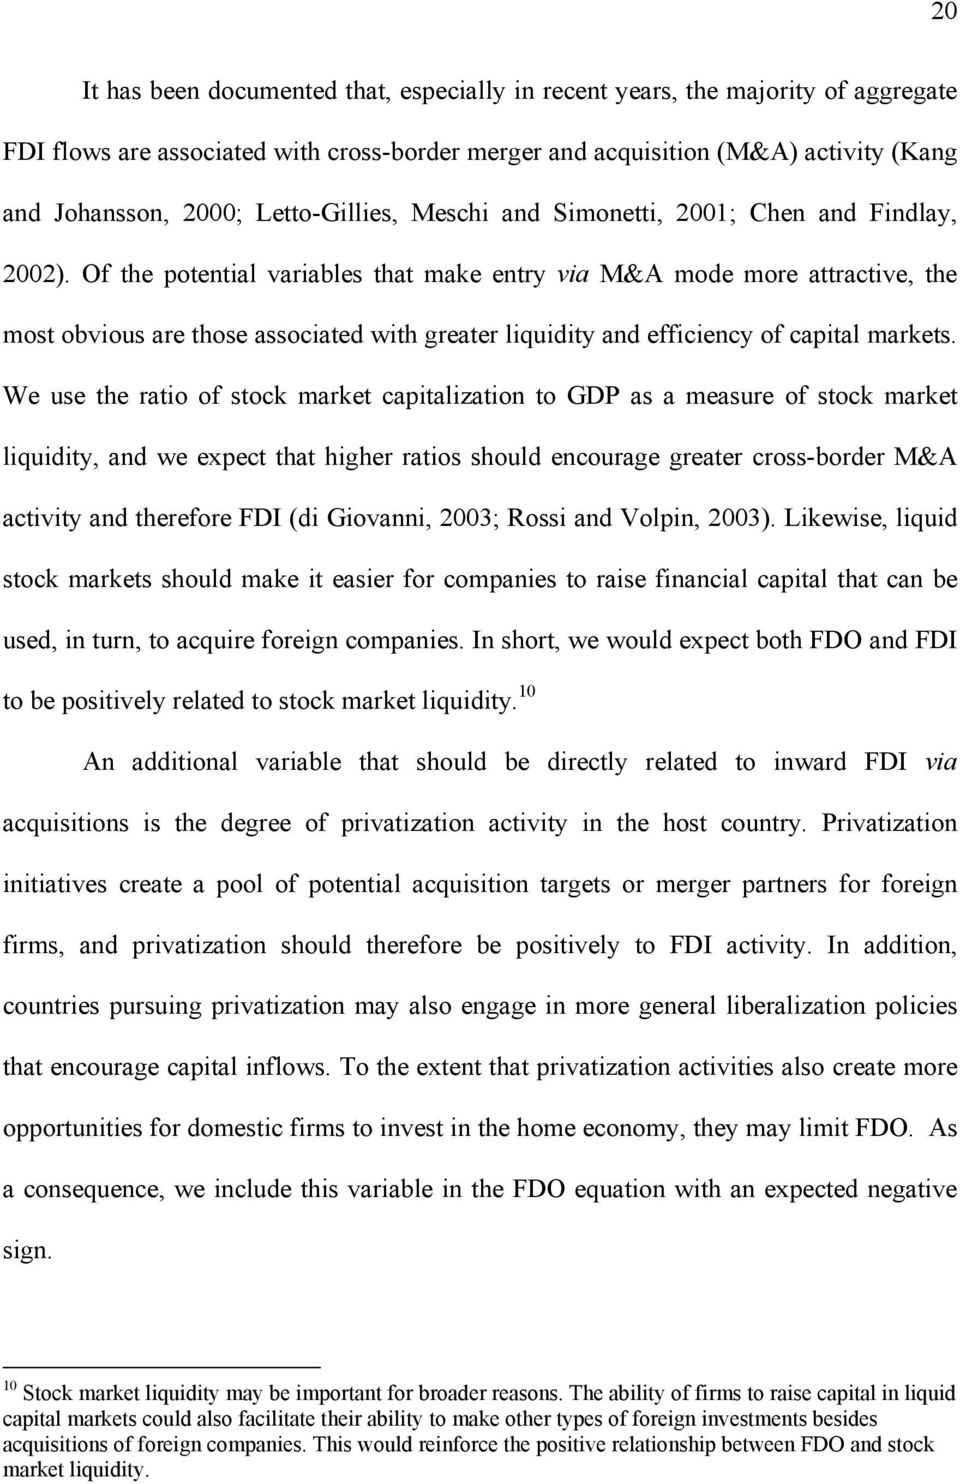 Of the potential variables that make entry via M&A mode more attractive, the most obvious are those associated with greater liquidity and efficiency of capital markets.